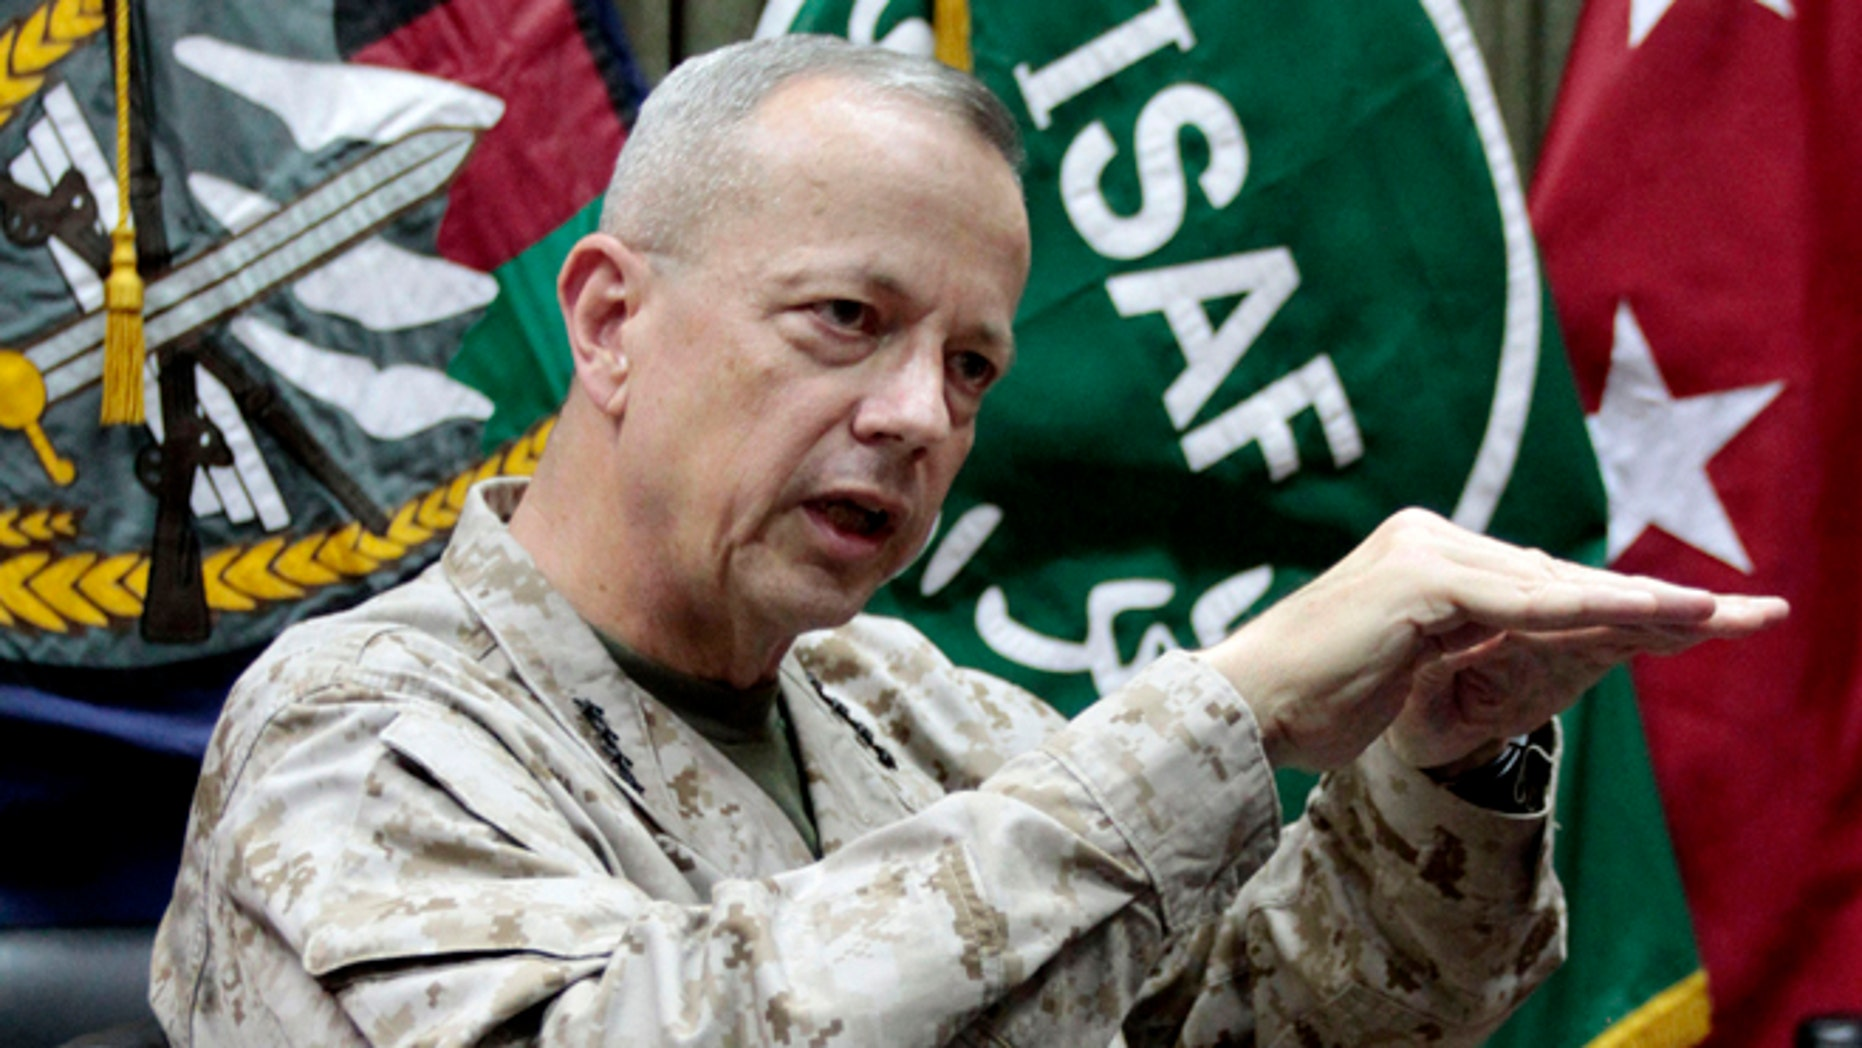 FILE: July 22, 2012: Gen. John Allen, top commander of the NATO-led International Security Assistance Forces and U.S. forces in Afghanistan during an interview in Kabul, Afghanistan.